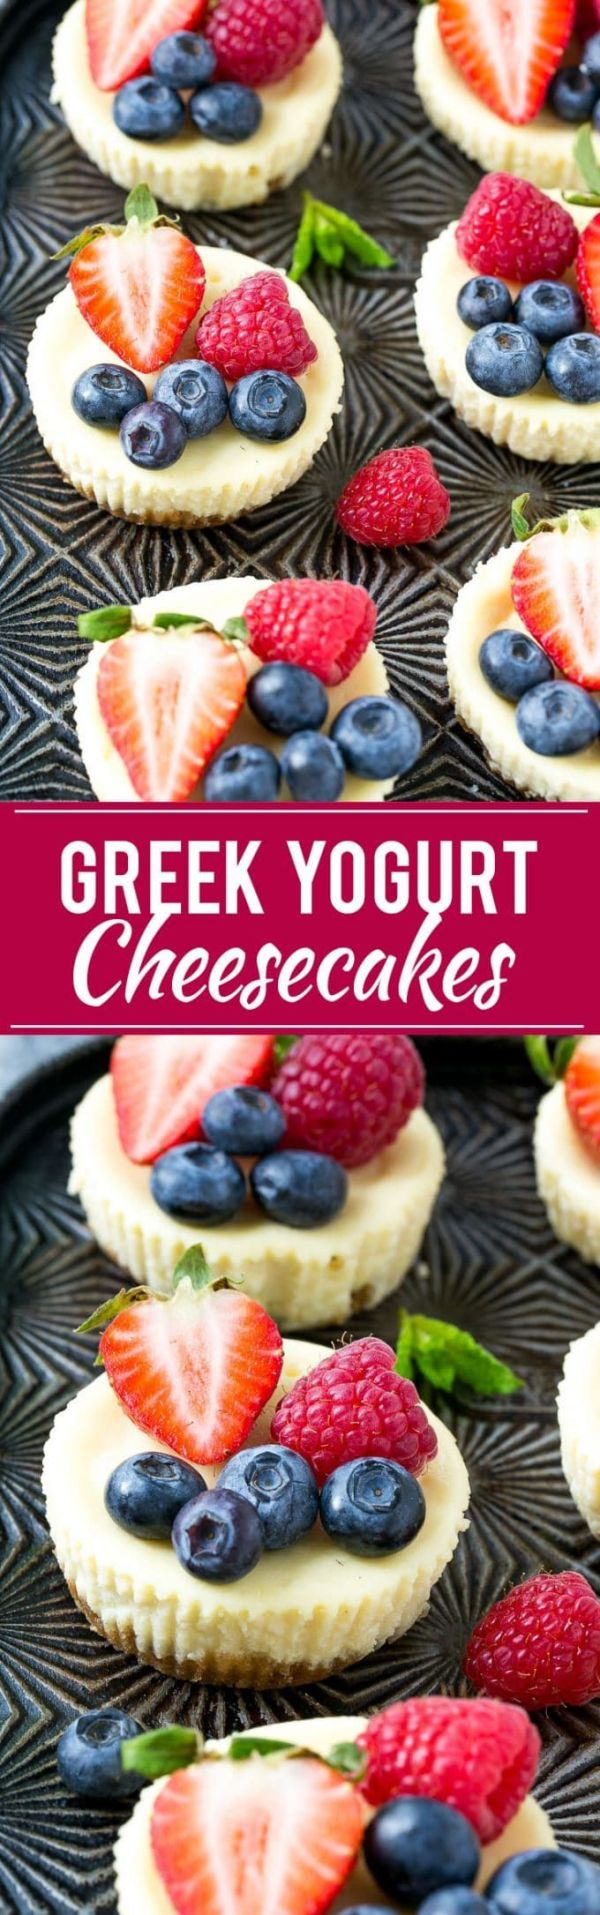 25 best ideas about Light cheesecake on Pinterest